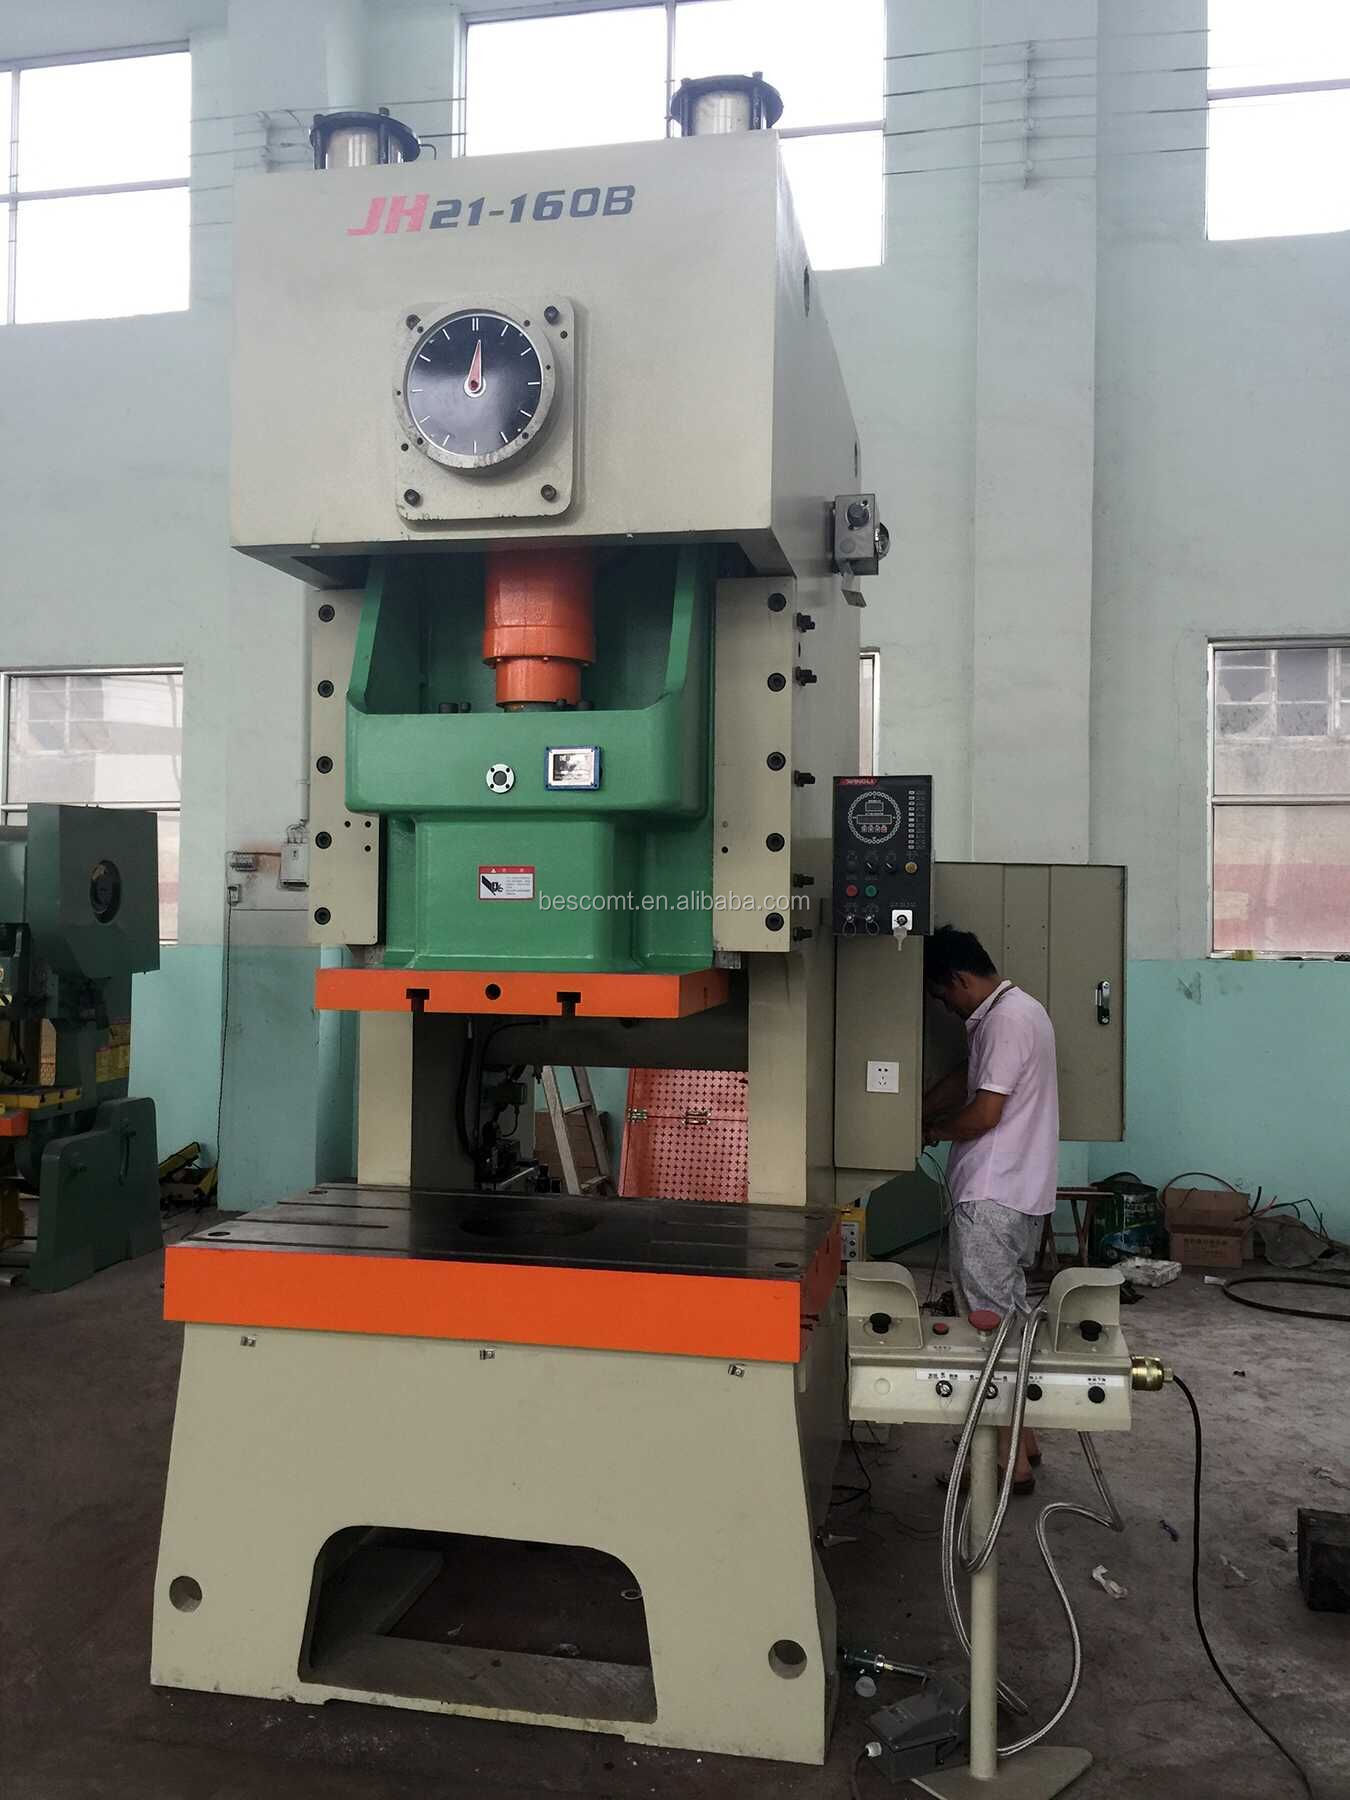 Besco Pneumatic Power Press Machine